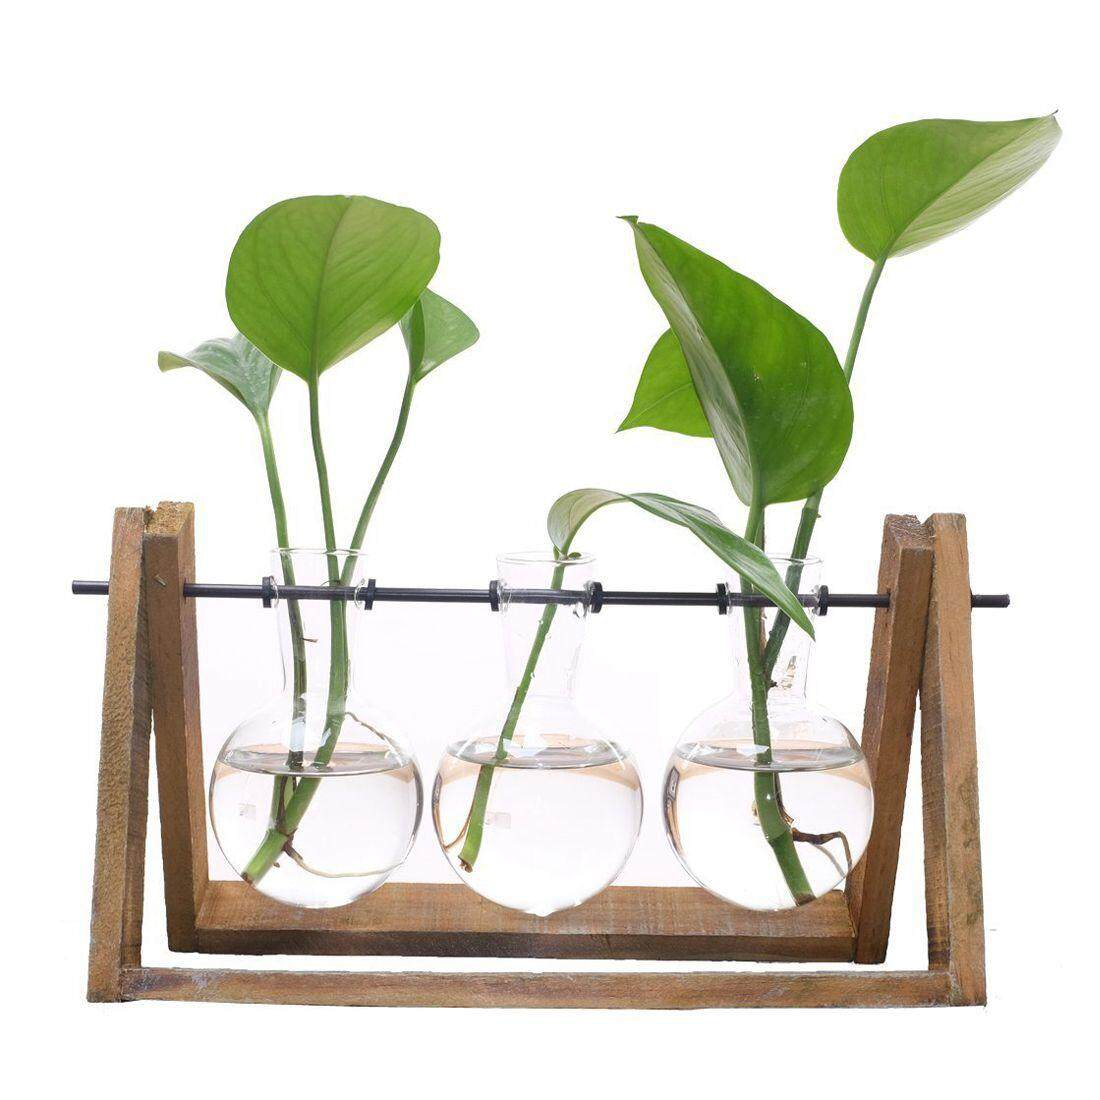 New Plant Terrarium with Wooden Stand Glass Vase Holder for Home Decoration,Scindapsus Container (3 Terrariums)